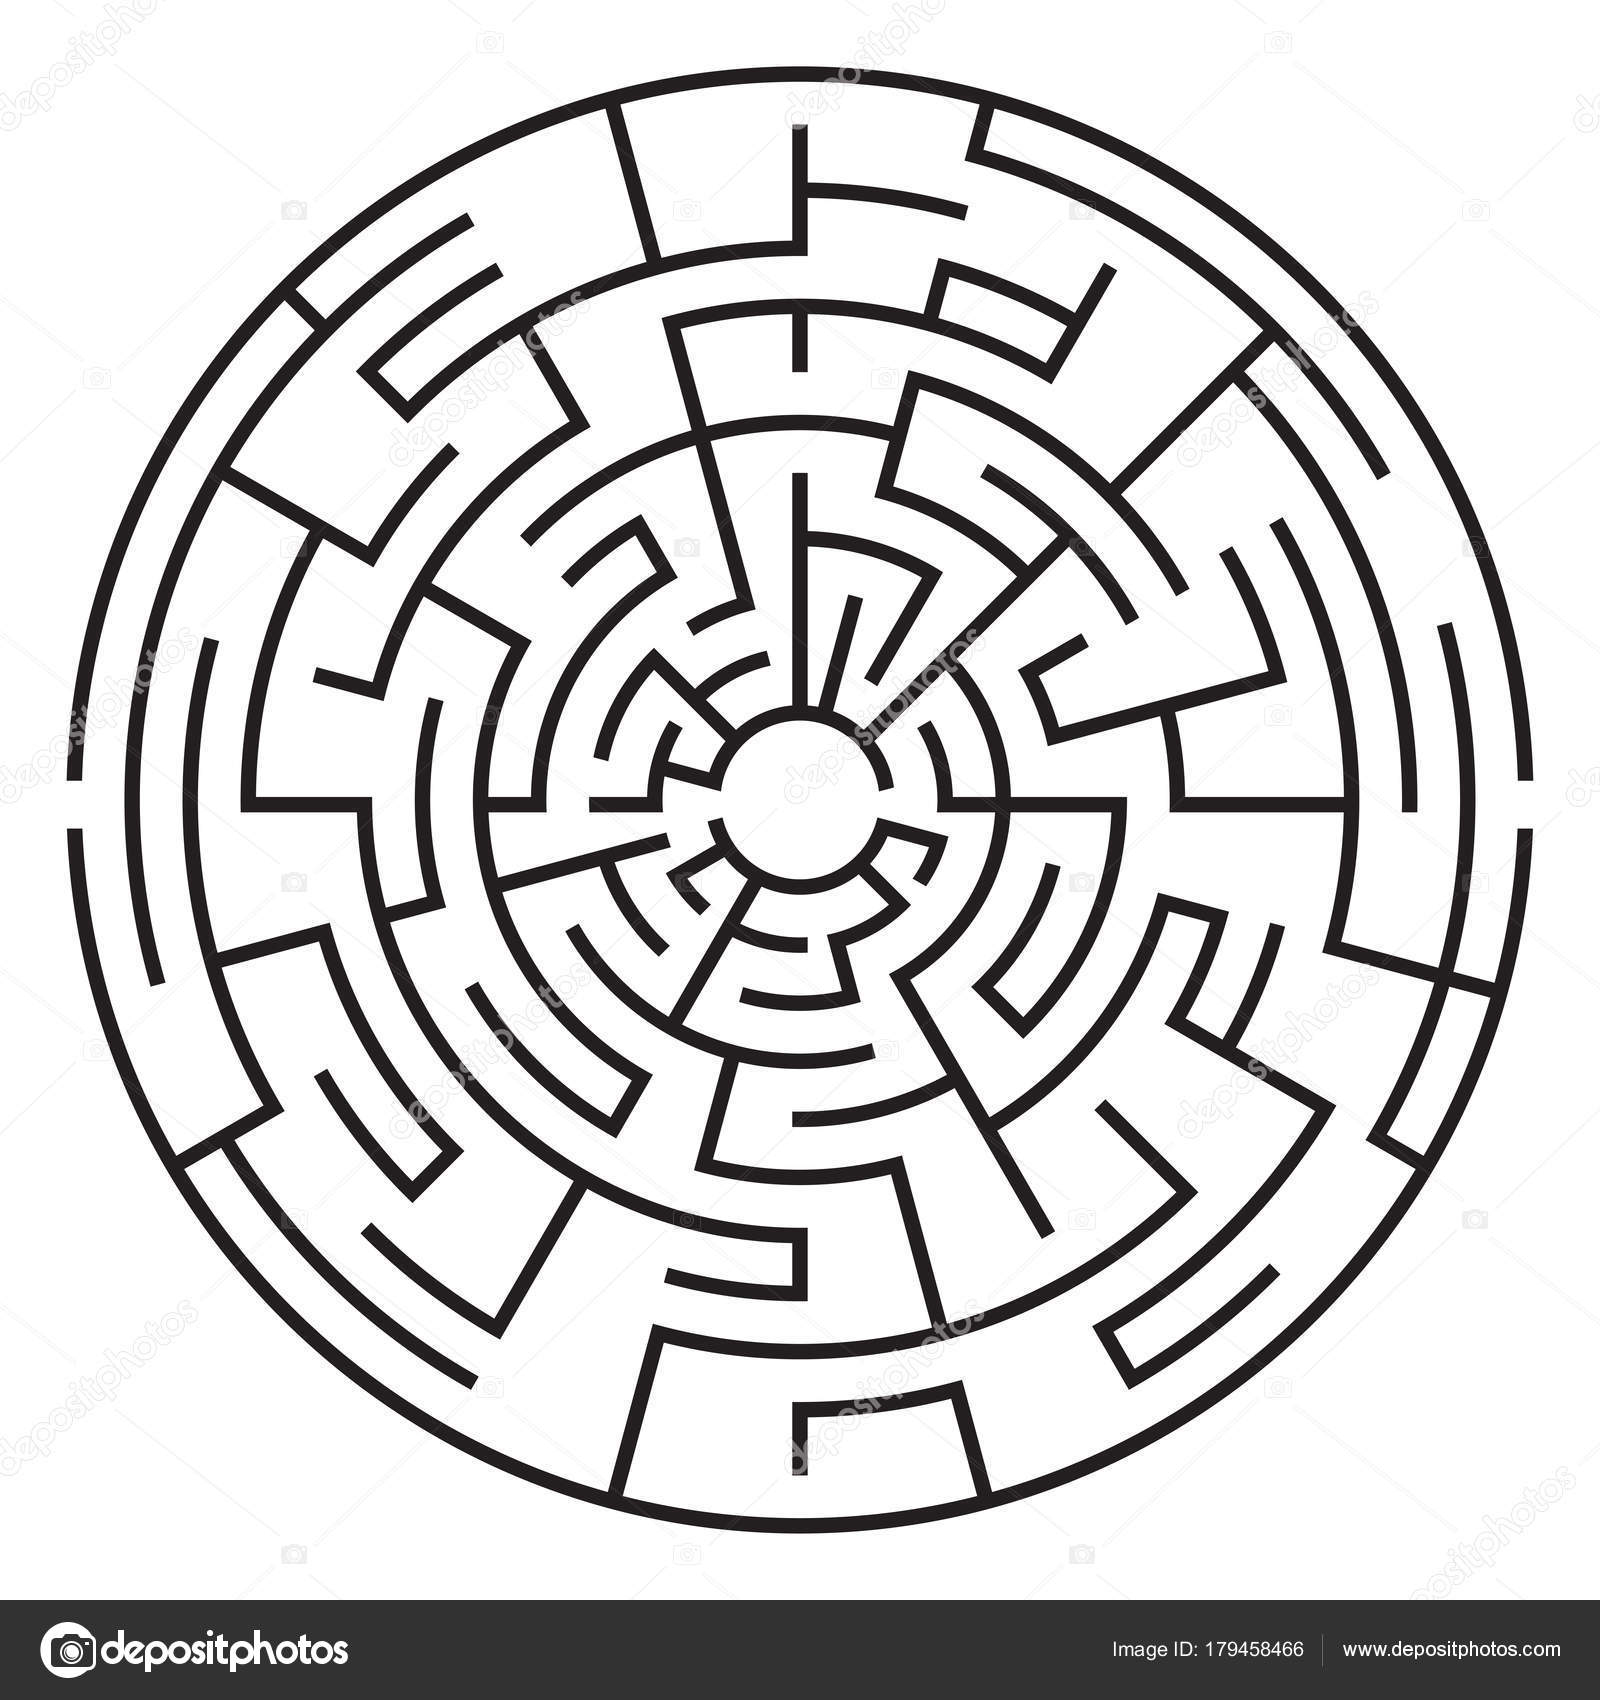 Circular maze isolated on white background  Medium